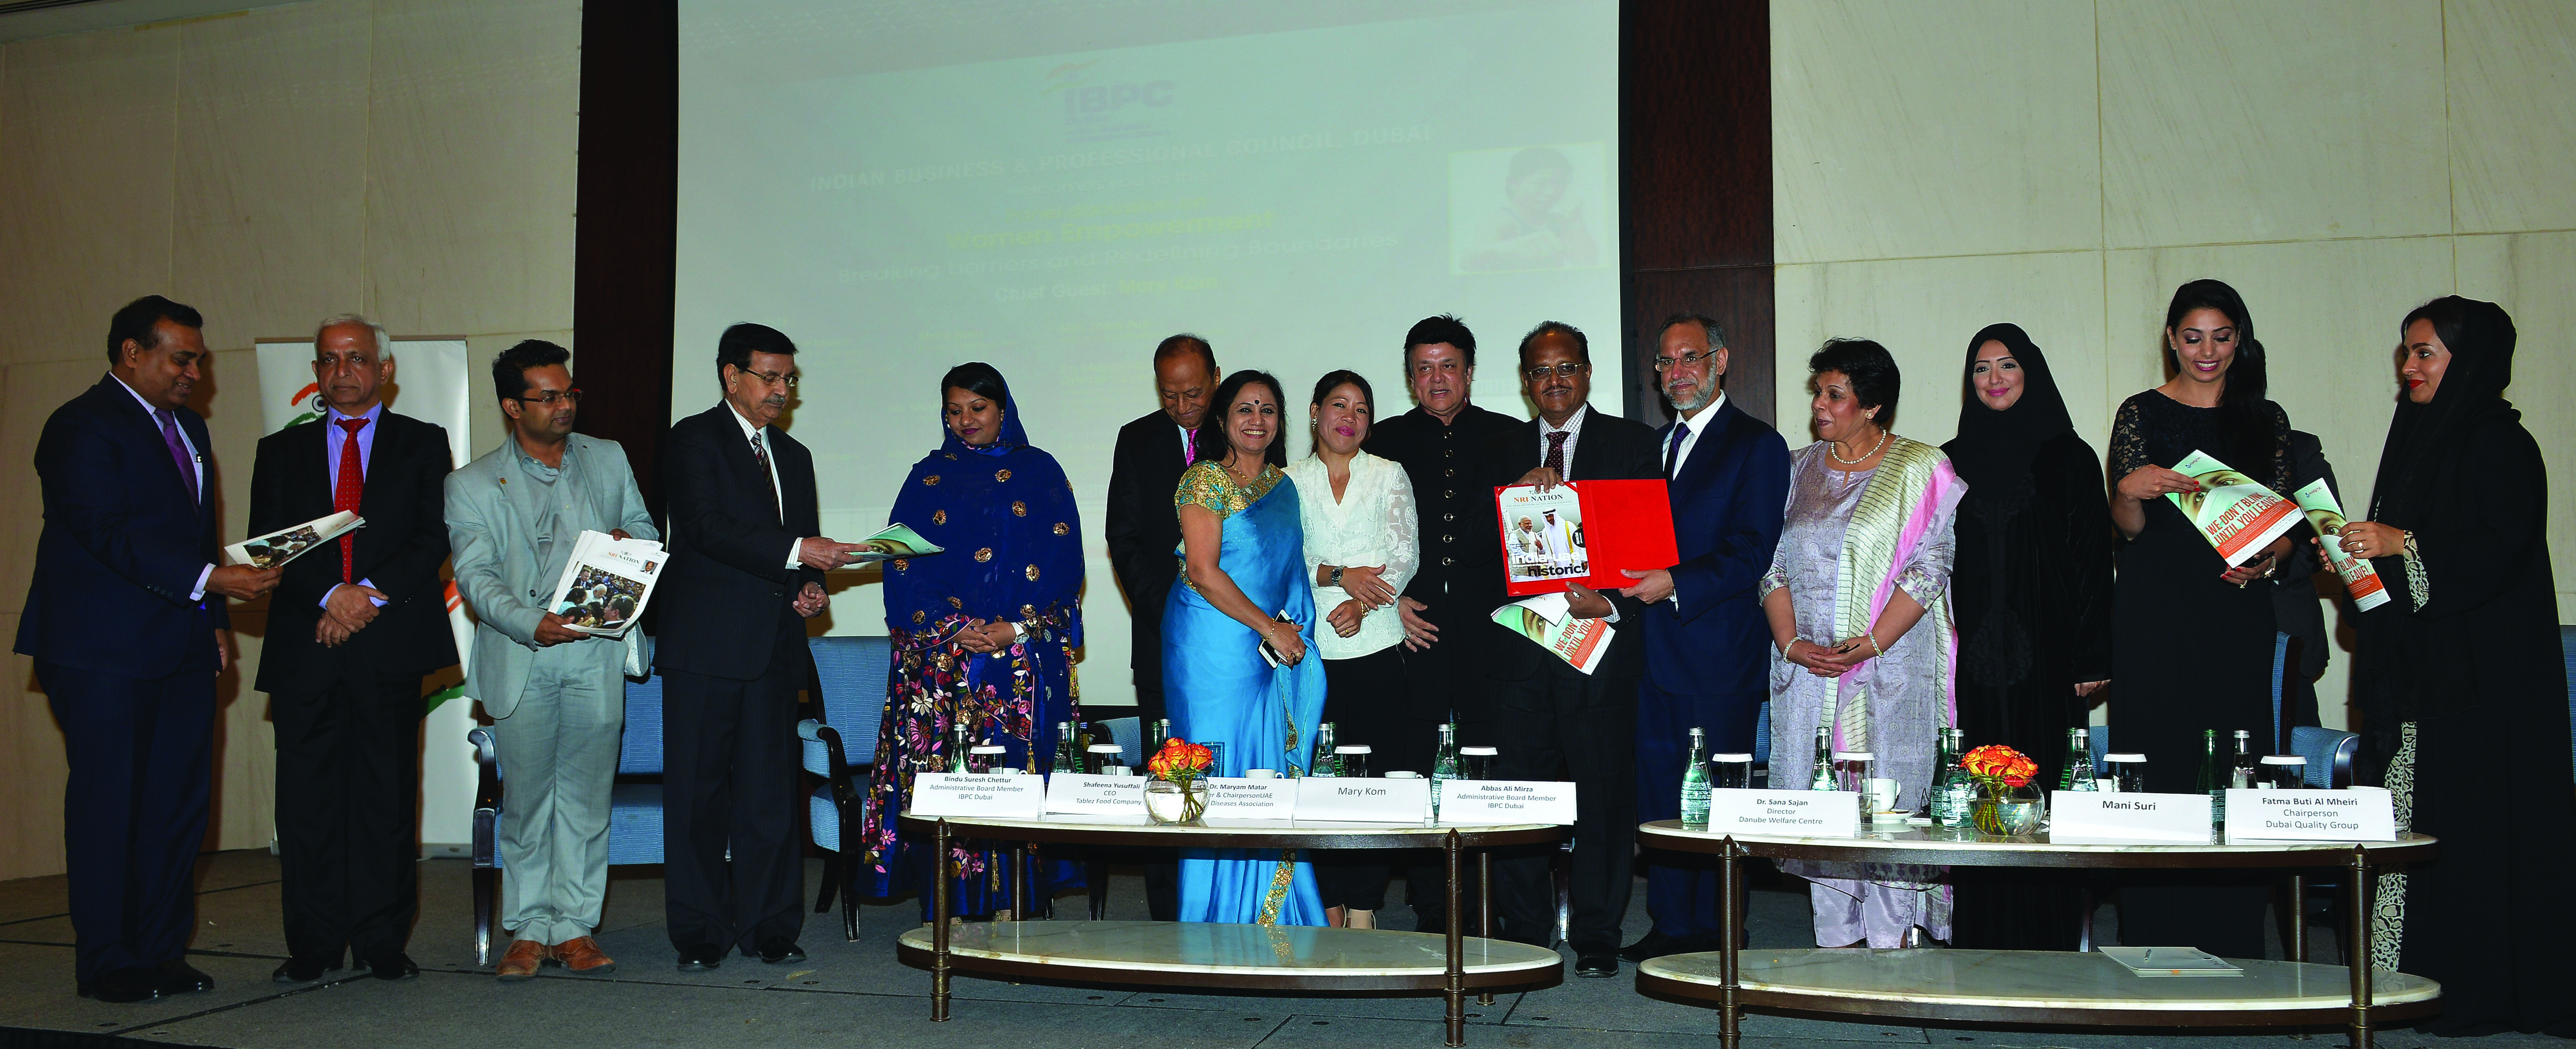 OLYMPIC MEDALIST MARY KOM ATTENDS IBPC'S WOMEN EMPOWERMENT DISCUSSION IN DUBAI